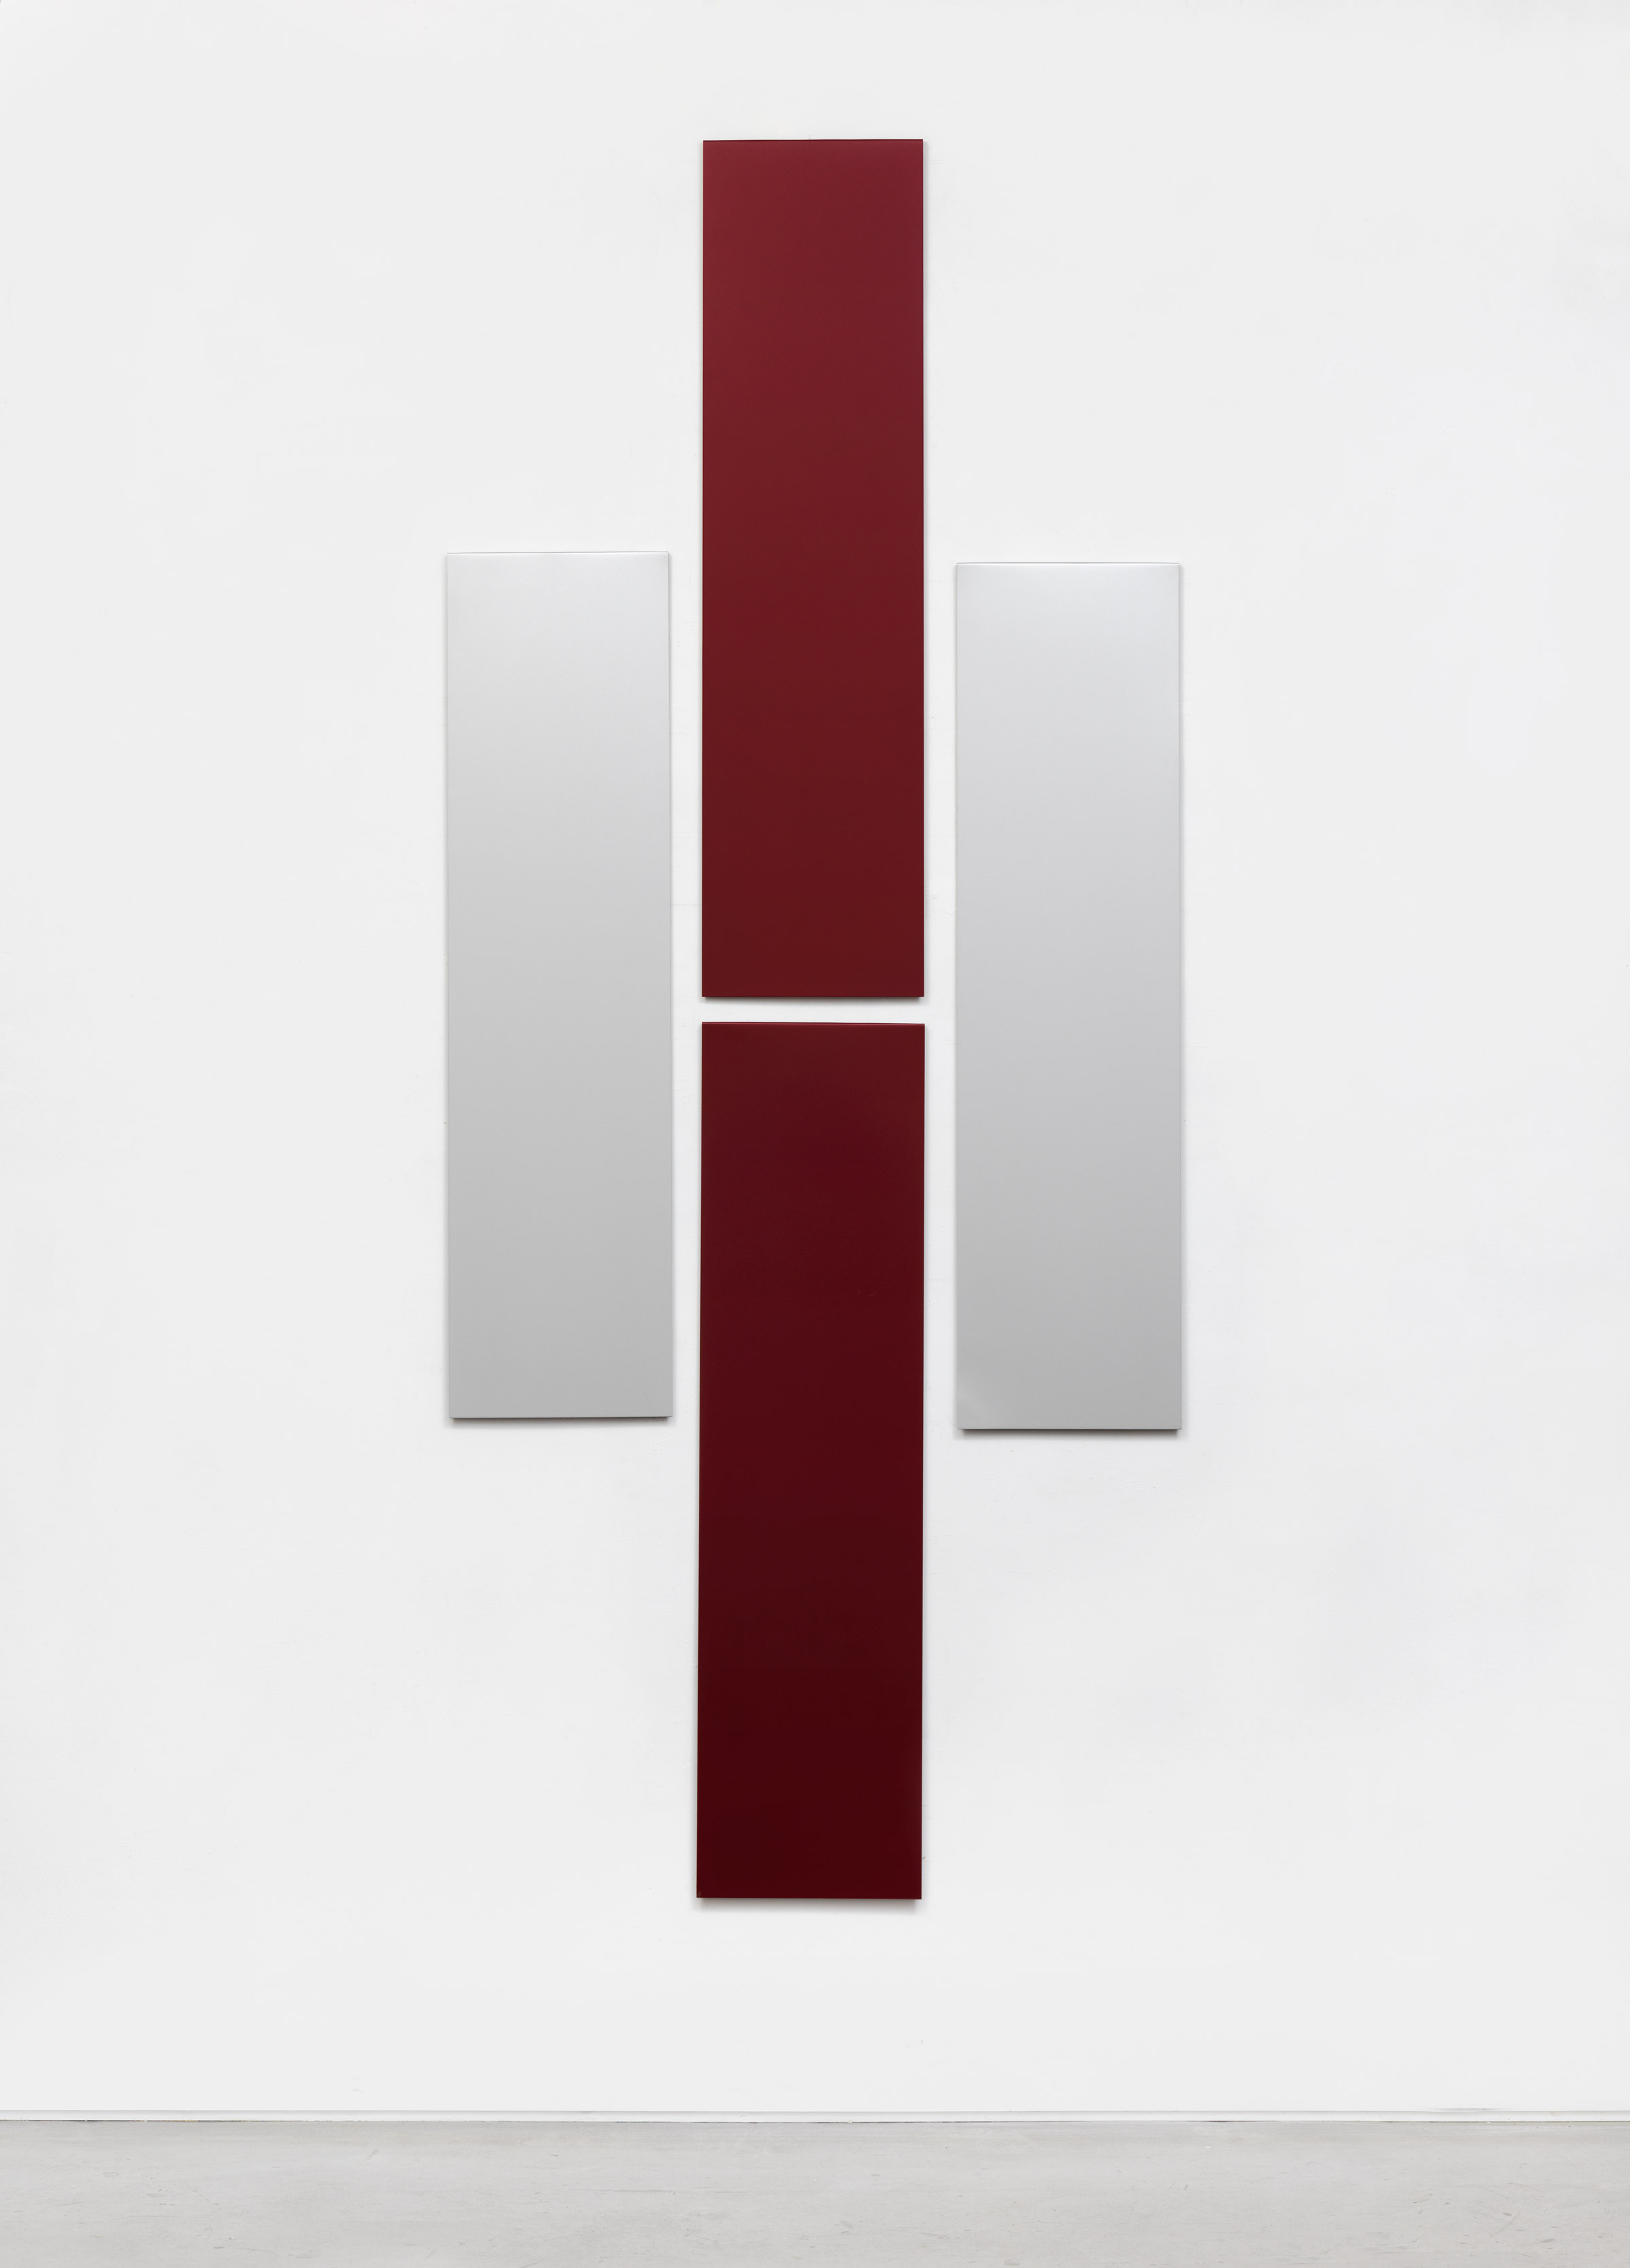 Don Dudley, Untitled (Aluminum Module), 1973 - 2018, Acrylic lacquer on aluminum, each module 46.75 x 12 in.; overall 96 x 40 in.